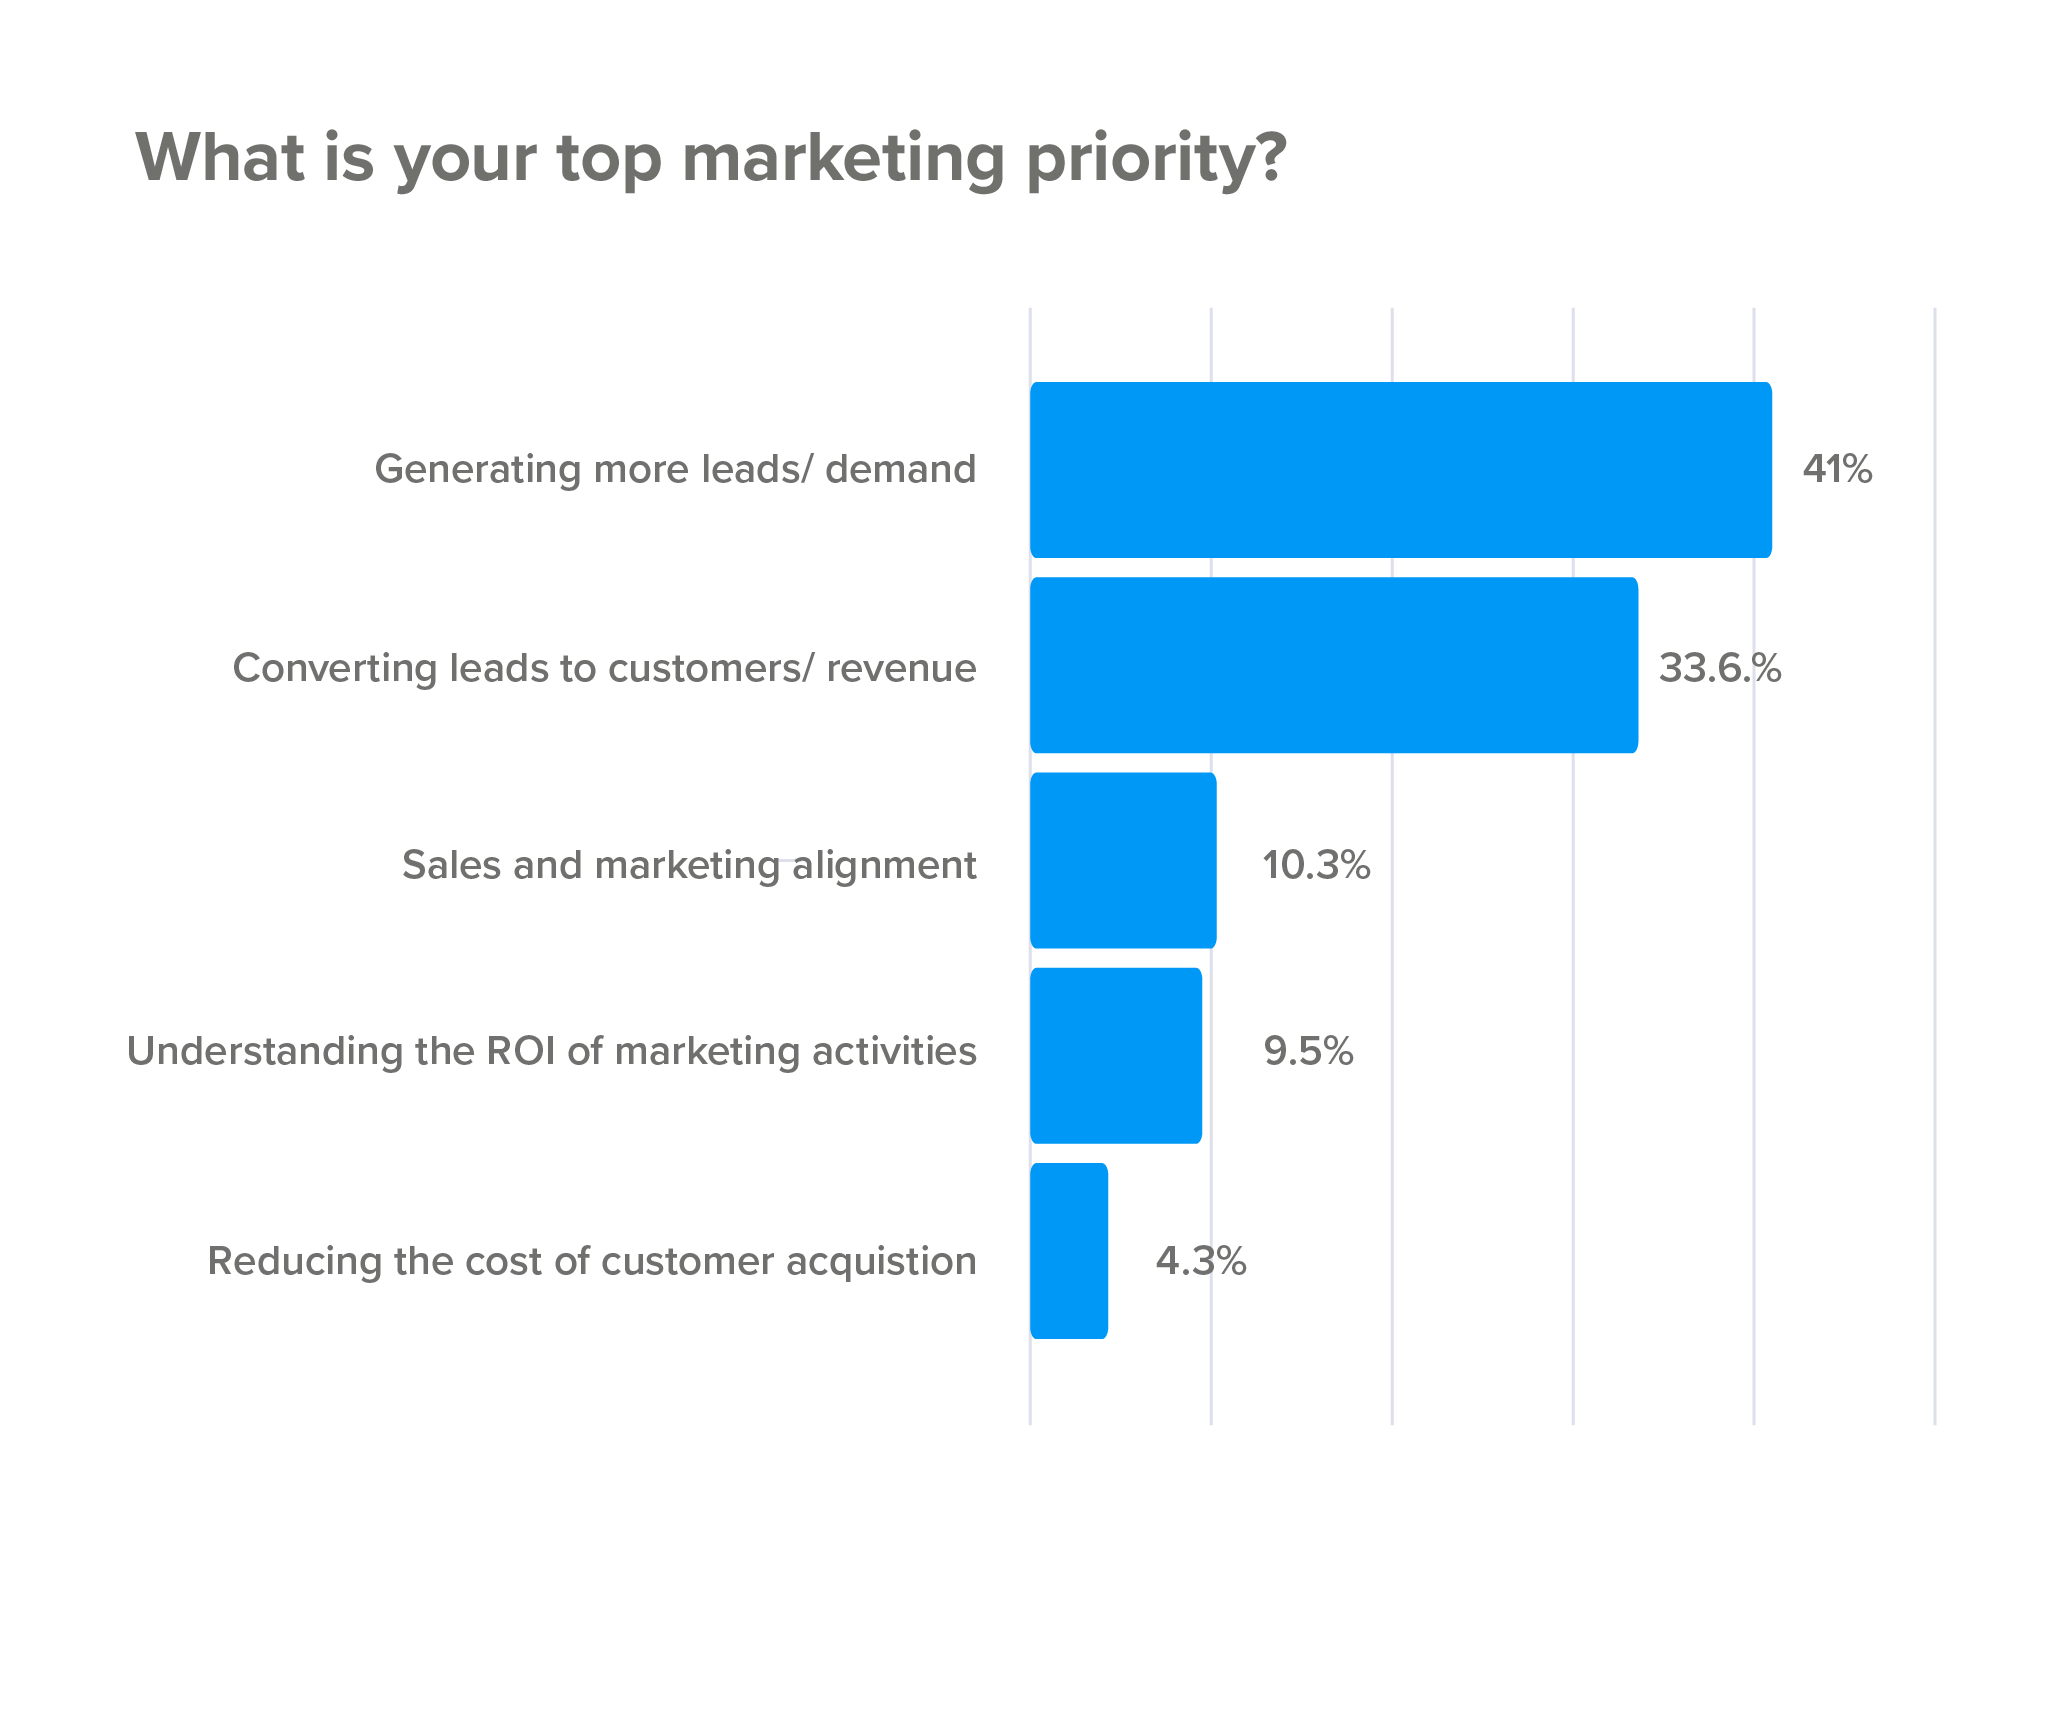 Top marketing priority for SaaS 2019